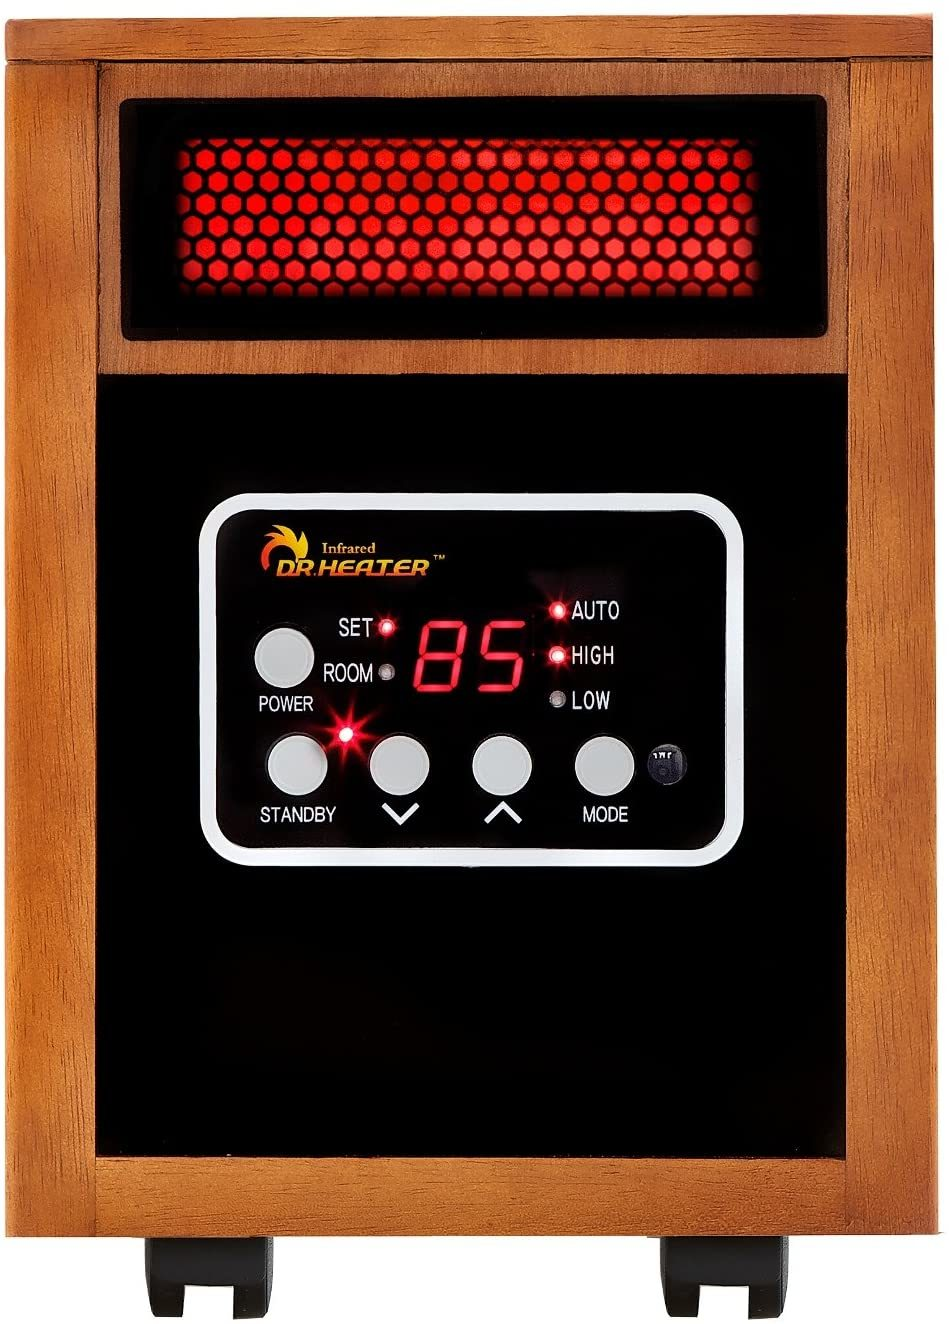 Dr Infrared Heater Portable Basement Space Heater